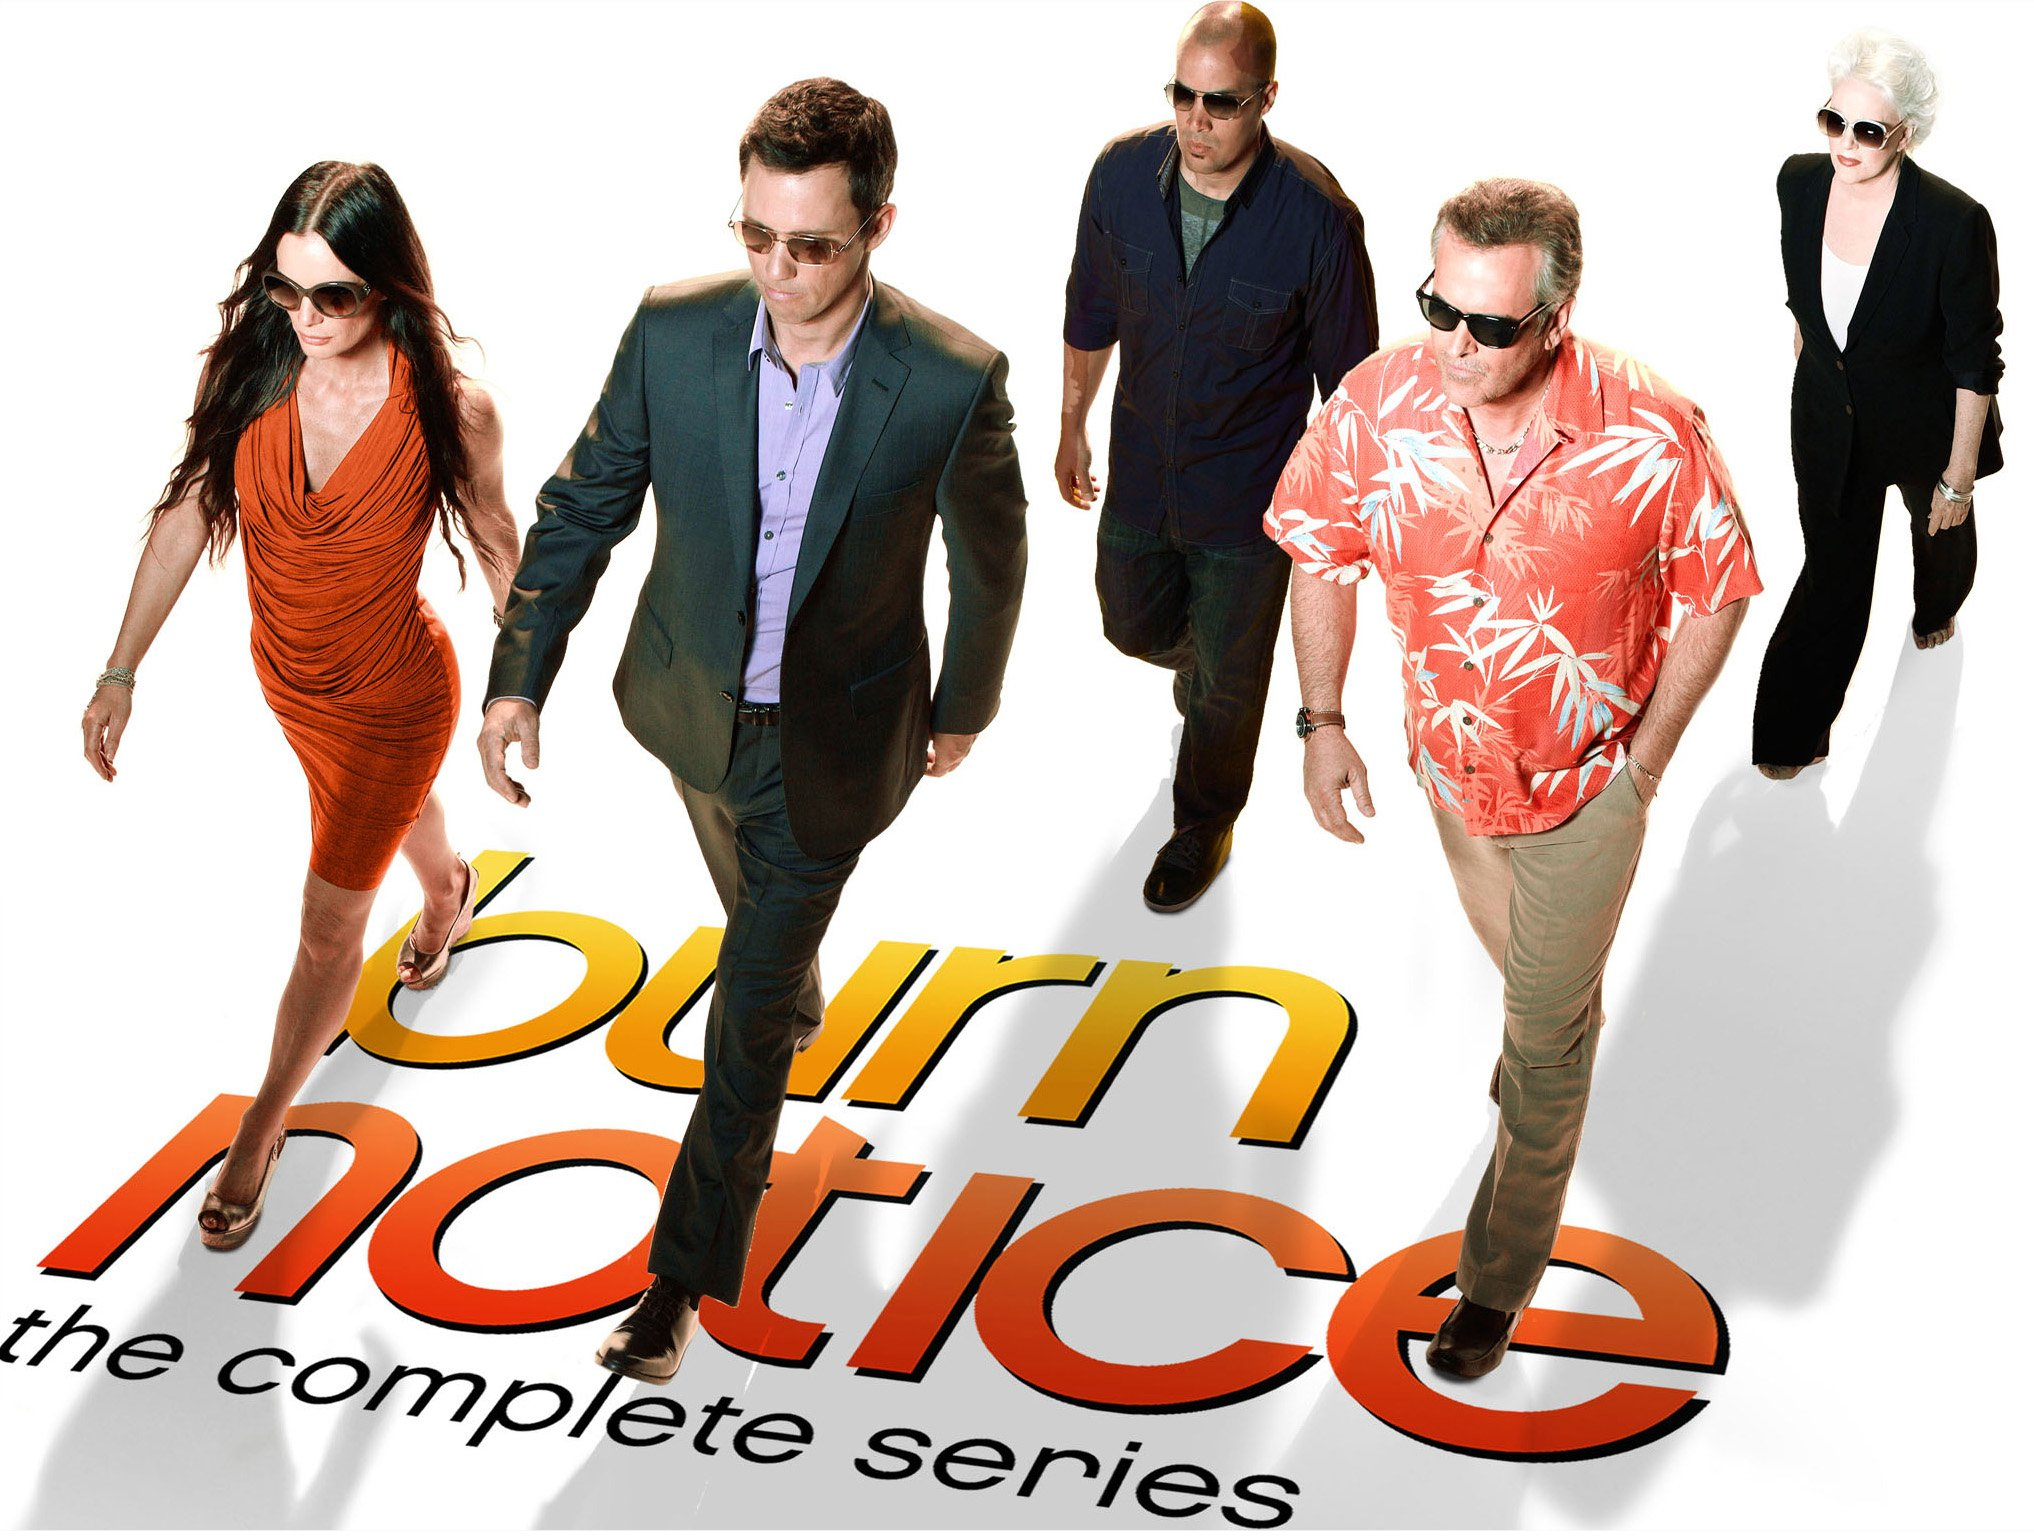 DVD : Burn Notice: The Complete Series (Boxed Set, Gift Set, AC-3, Dolby, Widescreen)